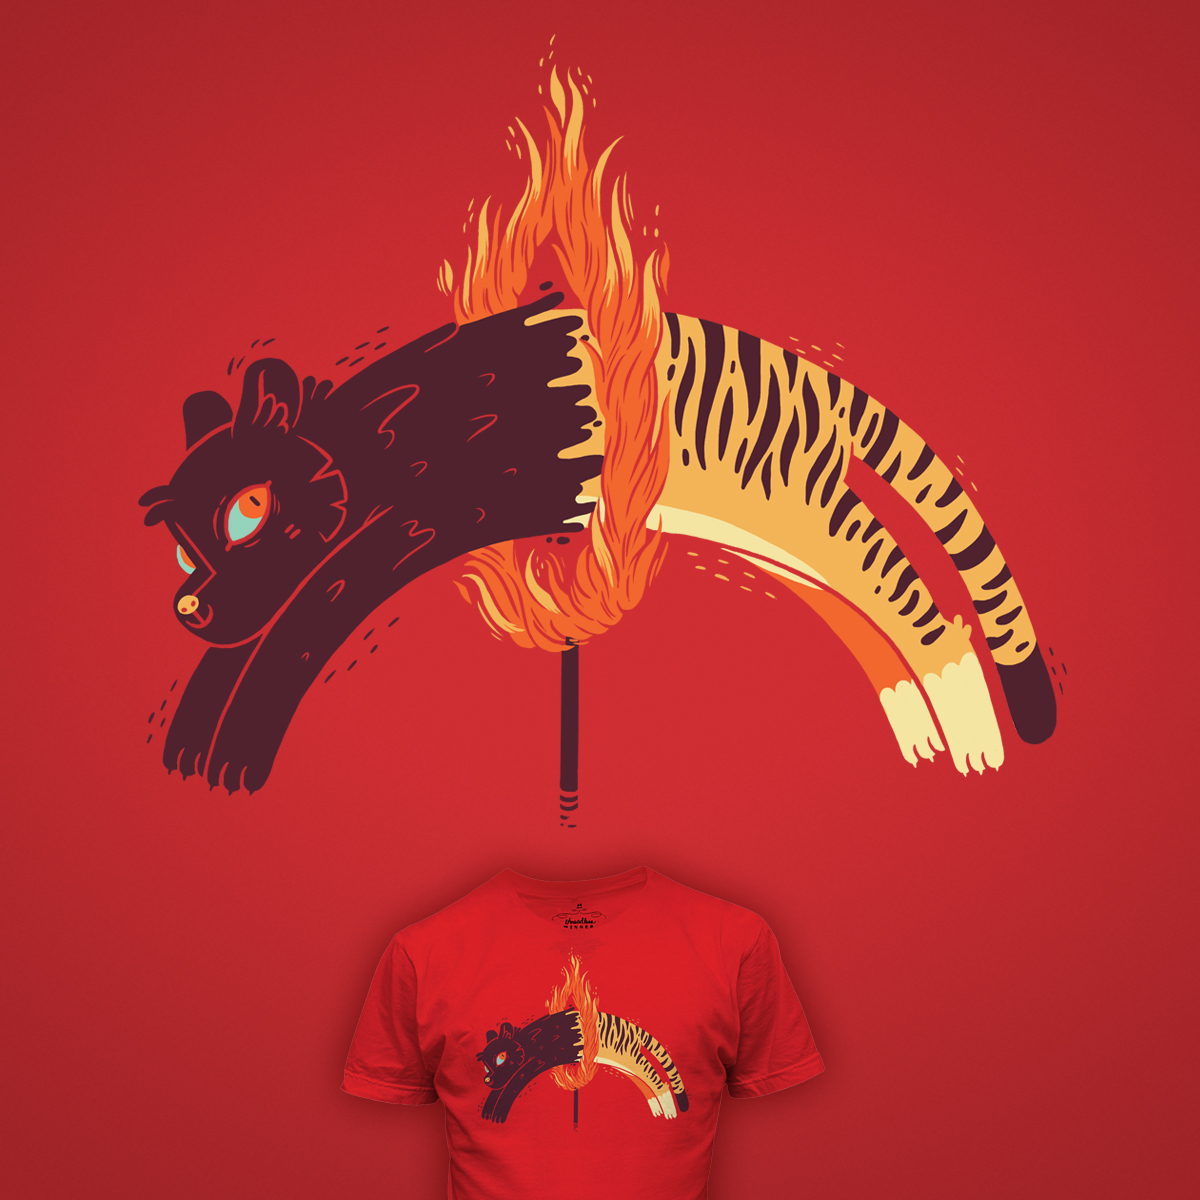 Pouncing Through Fire by PeculiarTiffany on Threadless